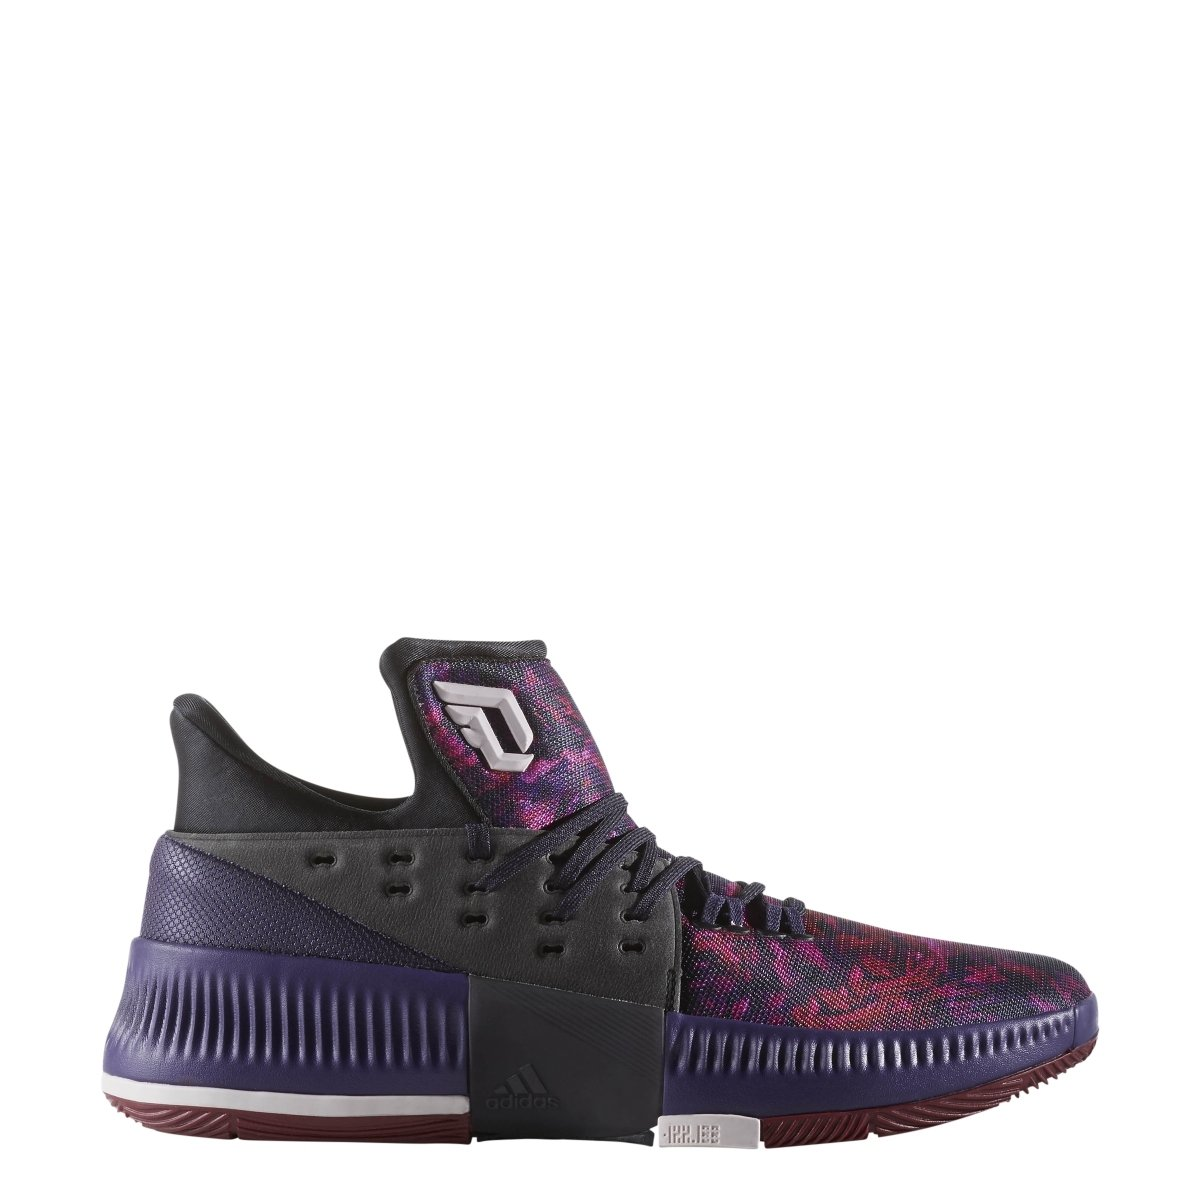 adidas Dame 3 Shoe Men's Basketball 11 Core Black-Ice Purple-Burgundy